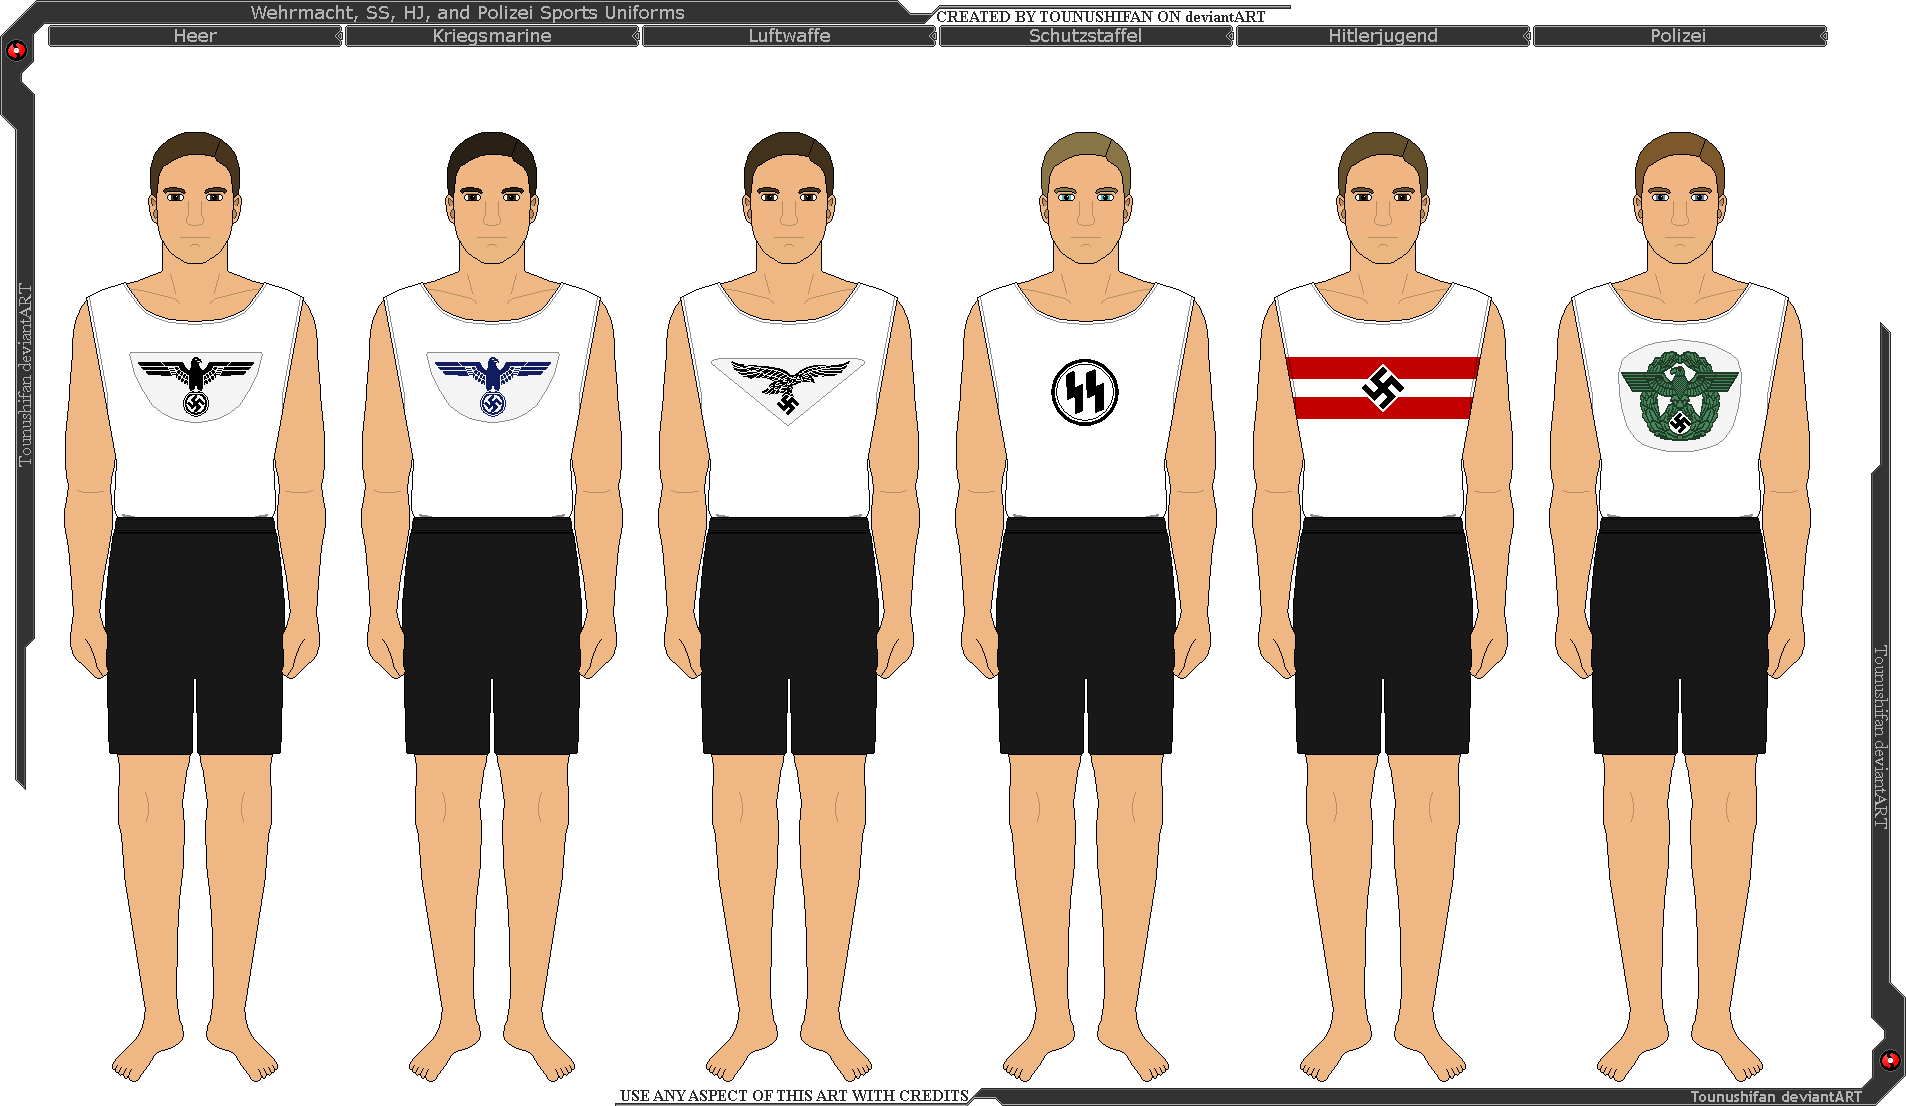 Wehrmacht, SS, HJ, and Polizei Sports Uniforms by Grand-Lobster-King on DeviantArt